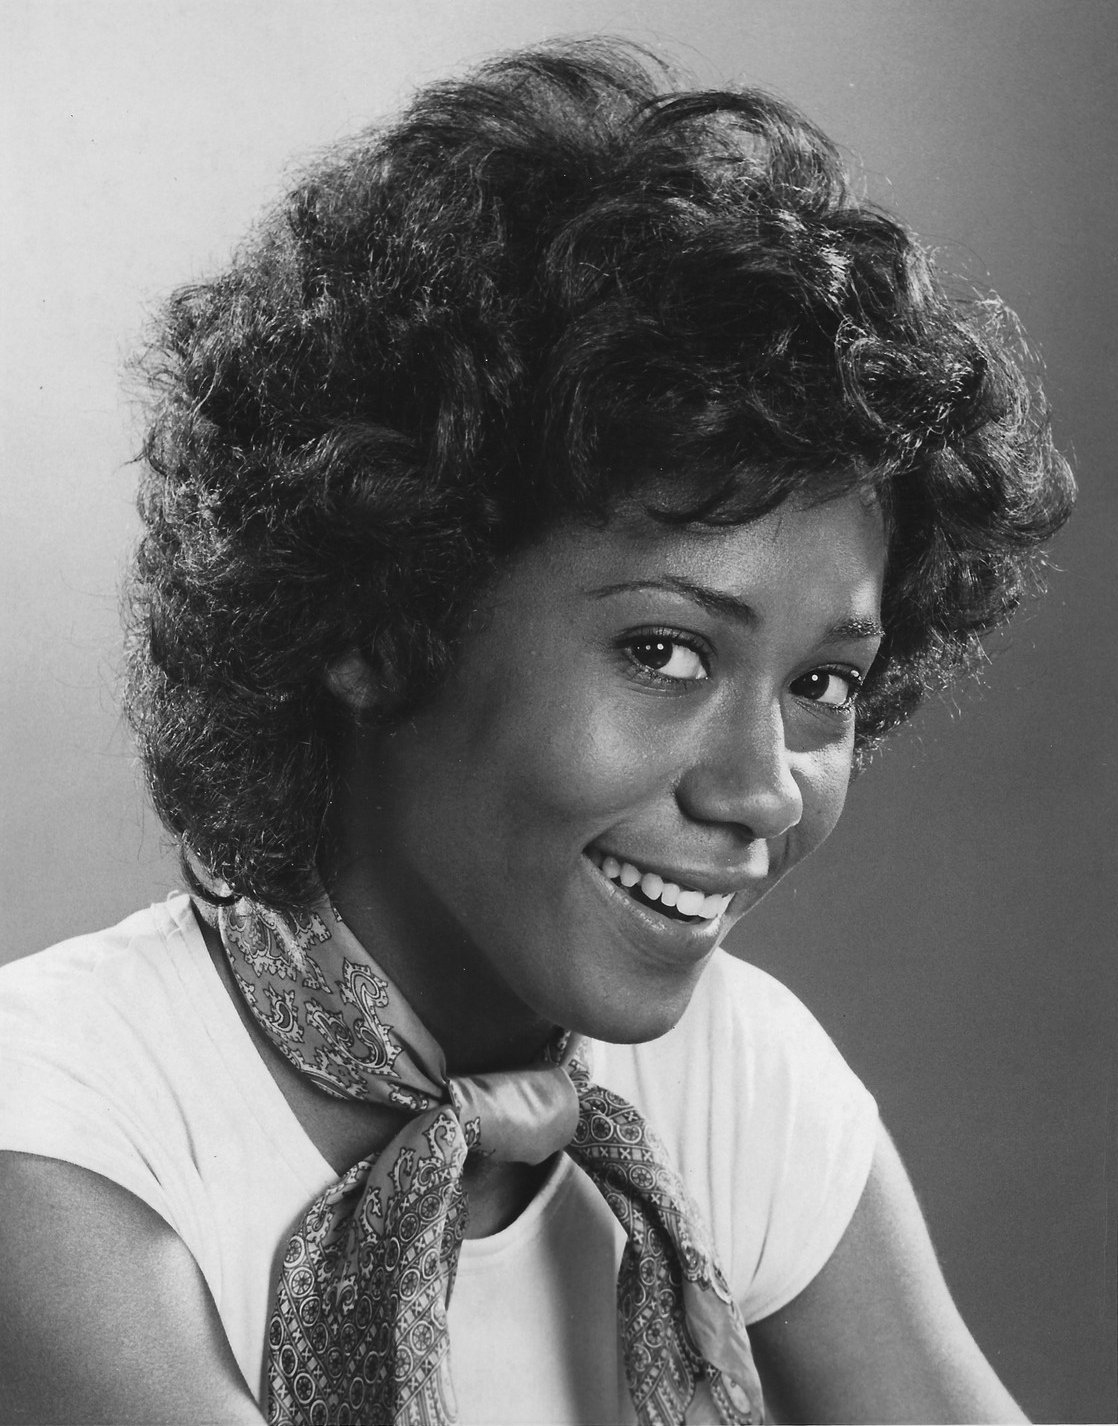 Black and white promotional portrait of Berlinda Tolbert in 1975   Photo: Wikimedia Commons Images, Public Domain